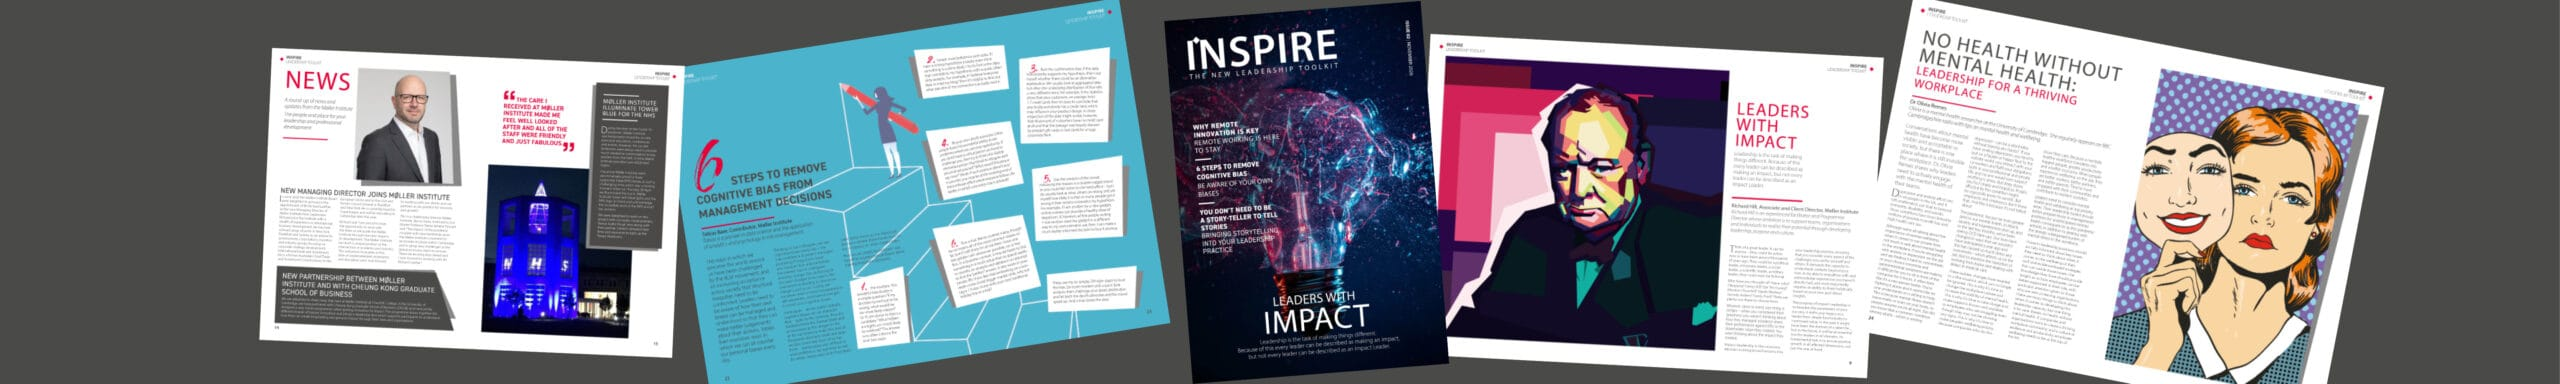 Picture of Inspire magazine by Moller Institute